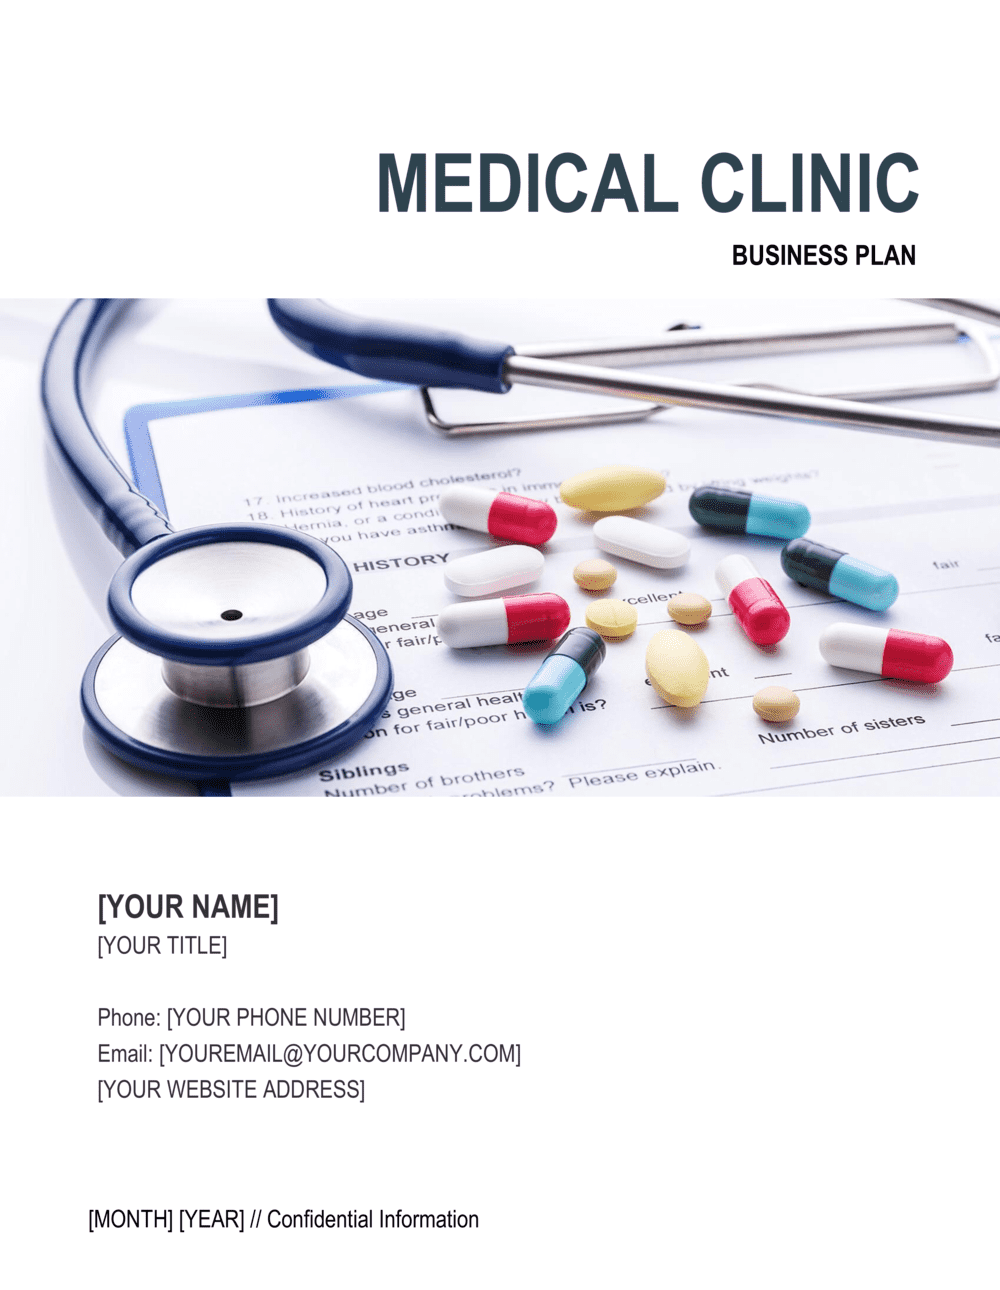 Business-in-a-Box's Medical Clinic Business Plan Template